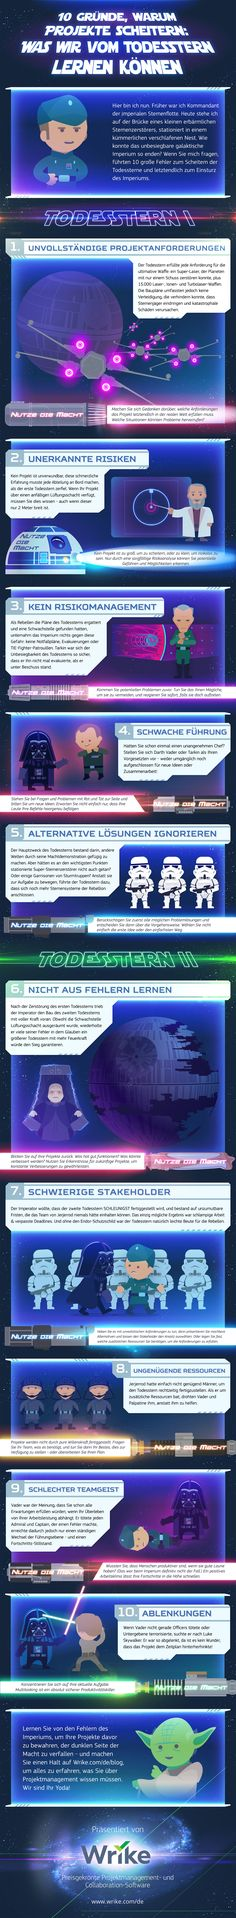 Infographic brought to you by Wrike free project planning tools The post 10 Reasons the Death Star Project Failed appeared first on Social Media Explorer. Management Software, Project Management Templates, Business Management, Management Tips, Projekt Manager, Death Star, Software Development, Management Development, Leadership